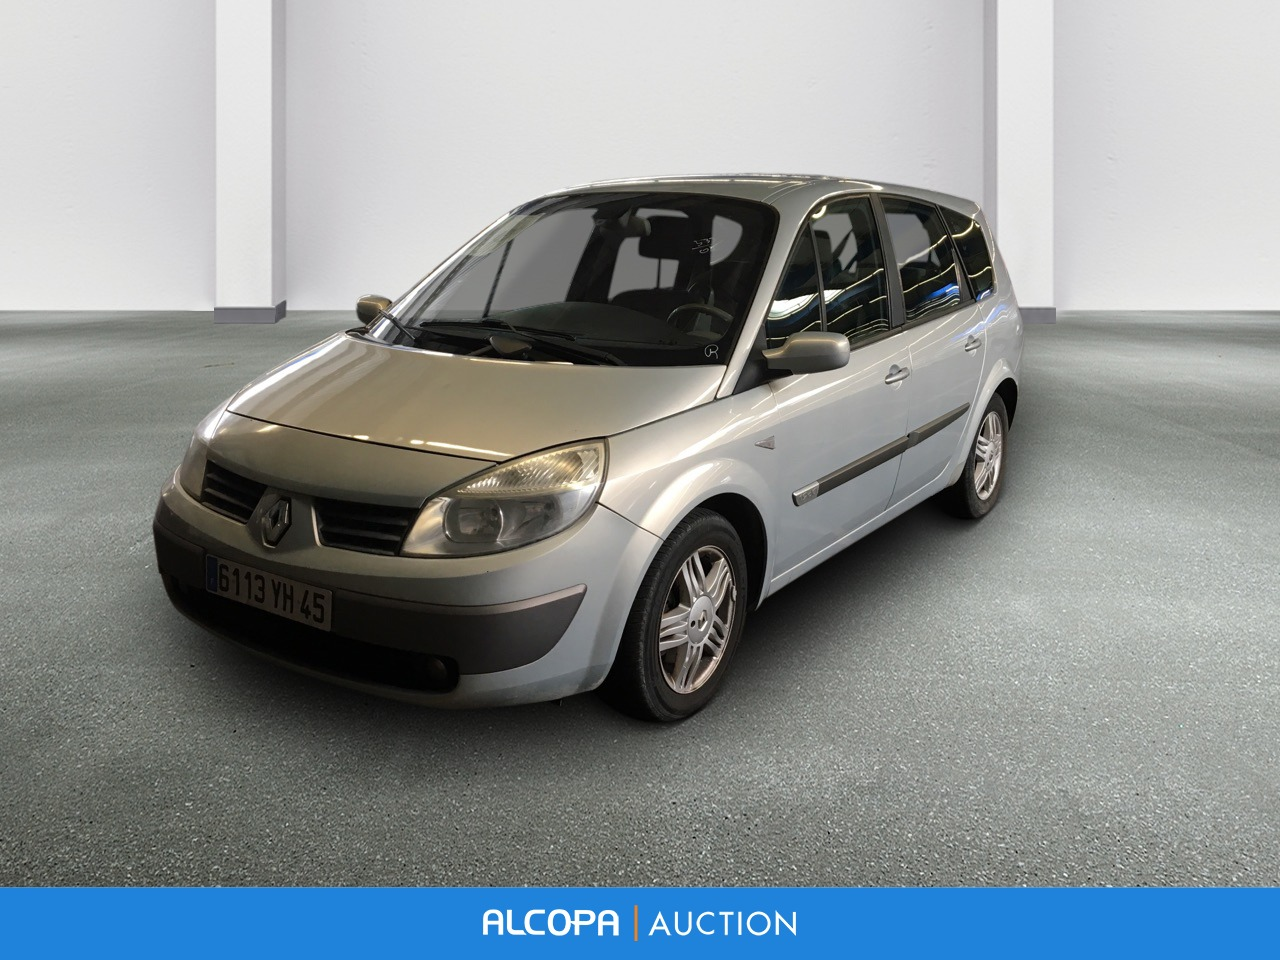 renault grand scenic ii grand scenic 1 9 dci 120 pack expression alcopa auction. Black Bedroom Furniture Sets. Home Design Ideas